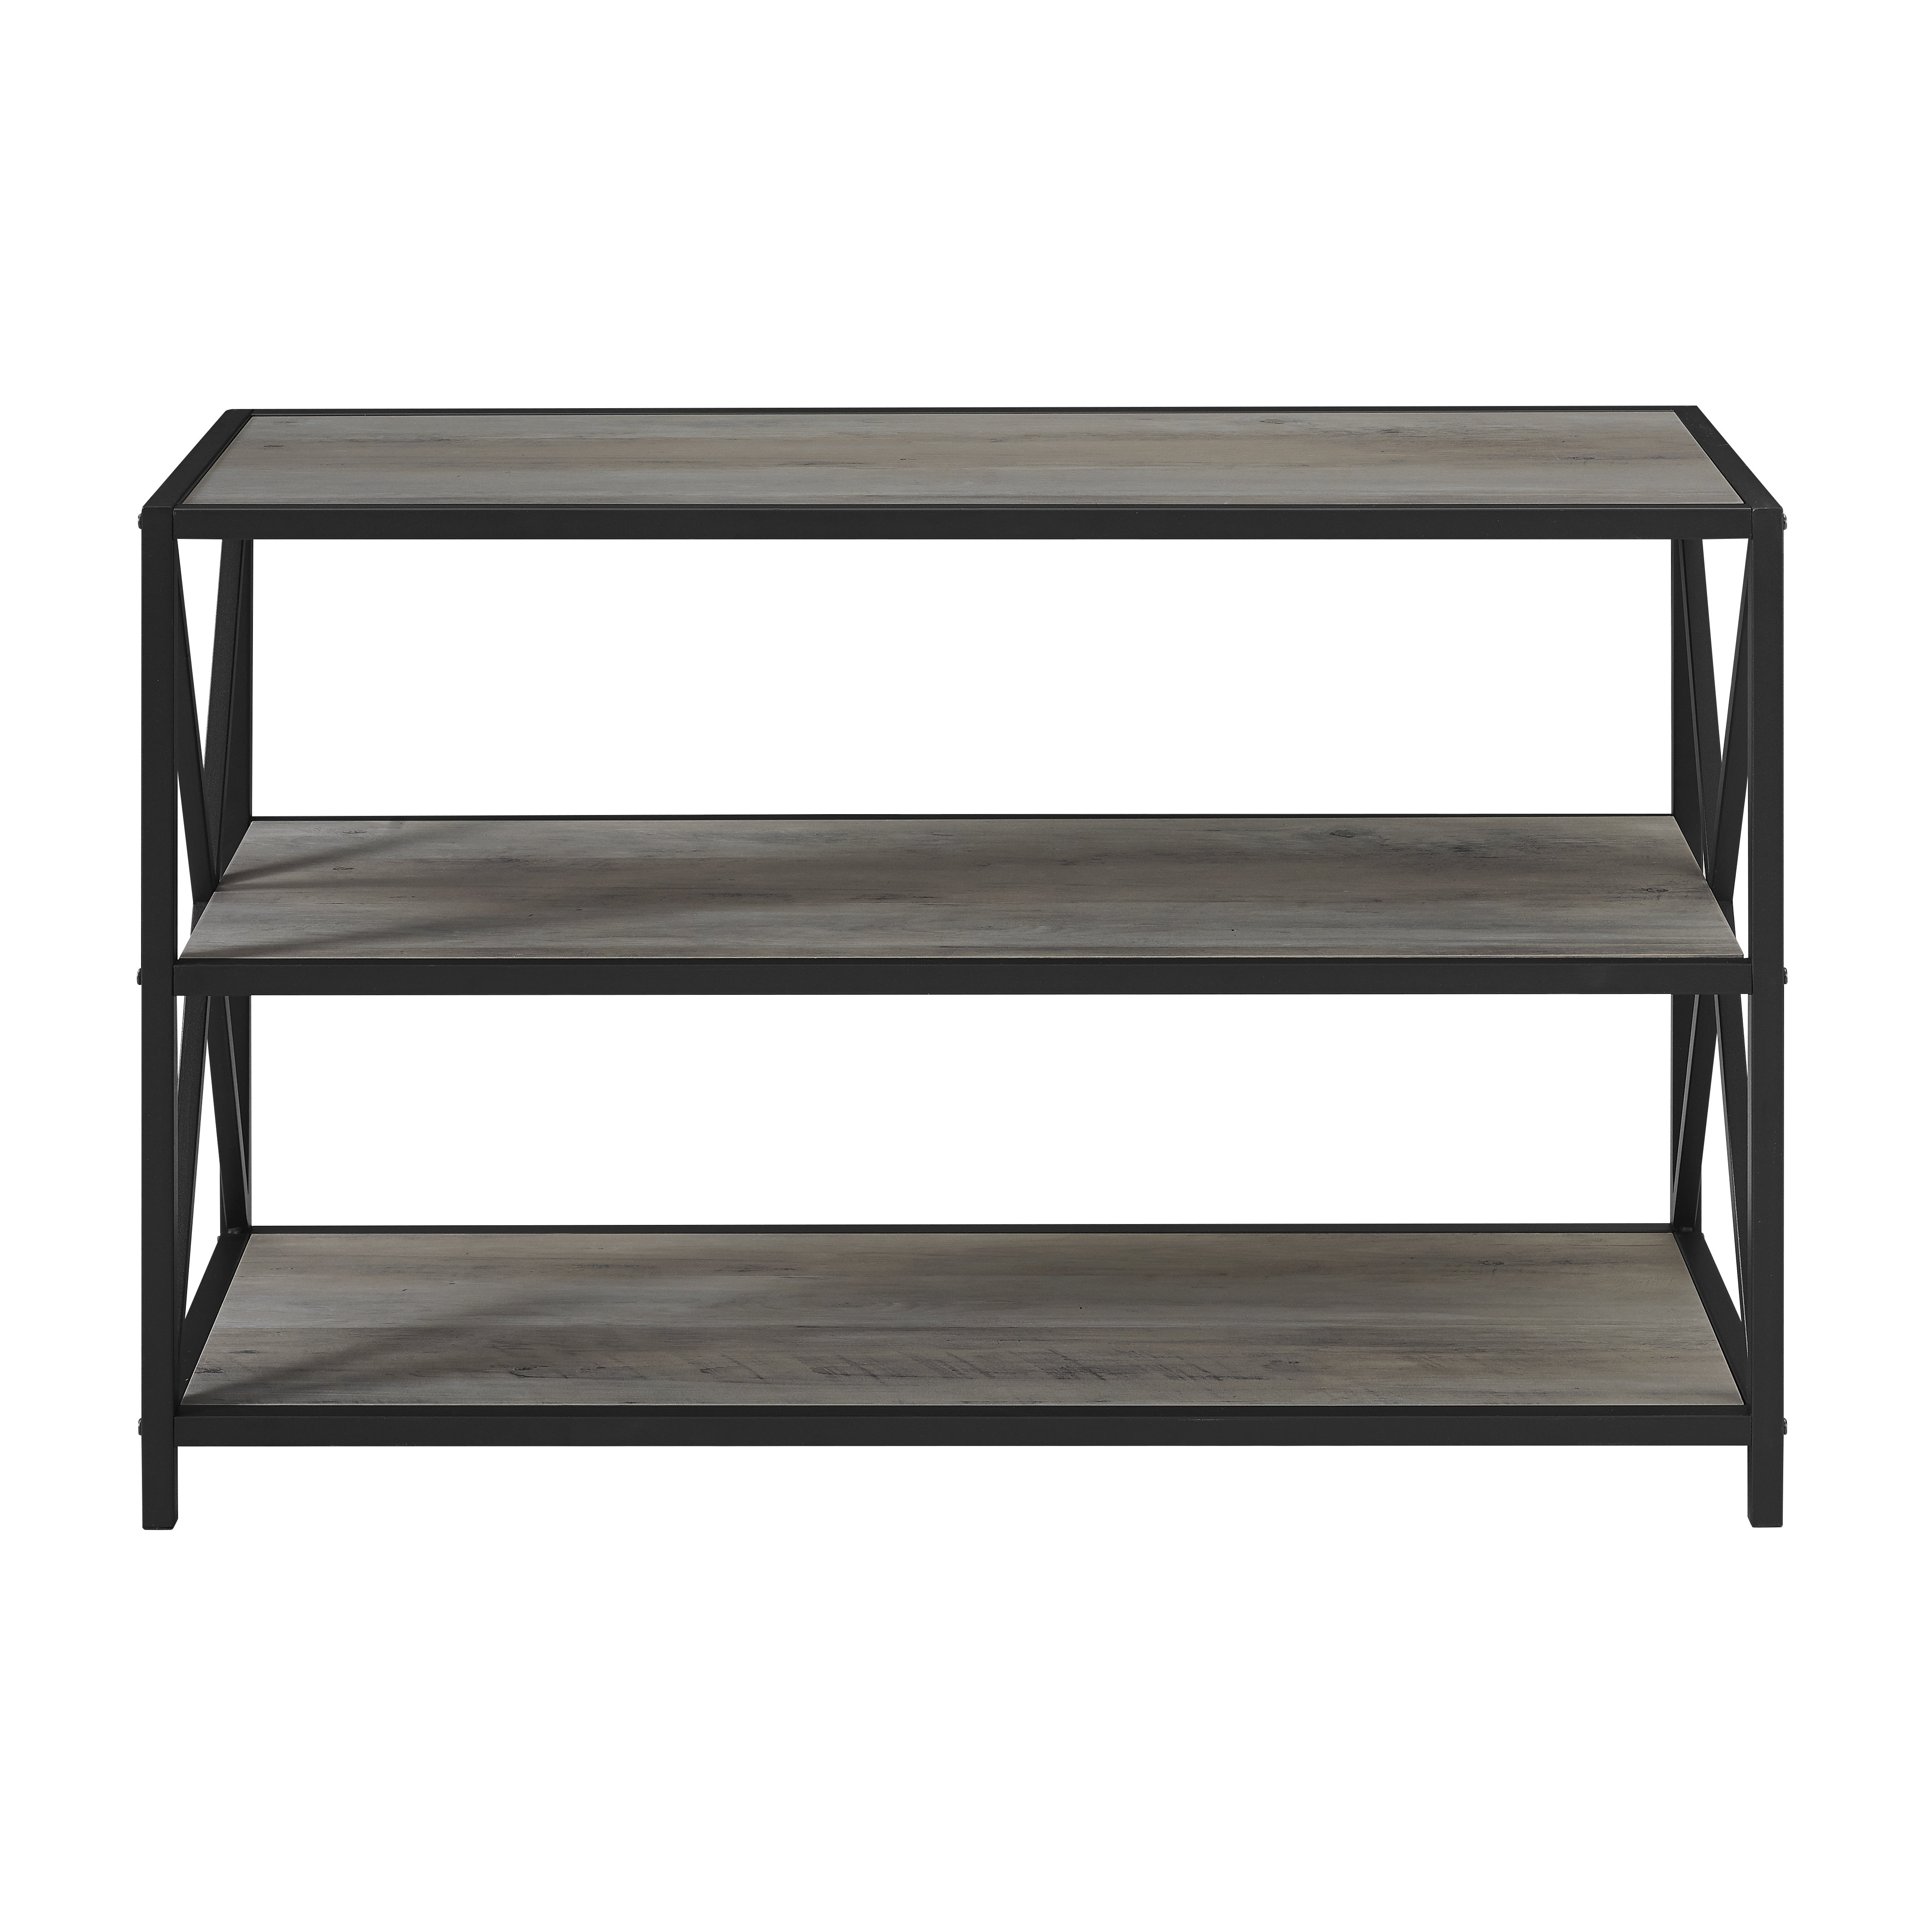 Adair Etagere Bookcase Regarding Most Popular Parker Modern Etagere Bookcases (View 1 of 20)